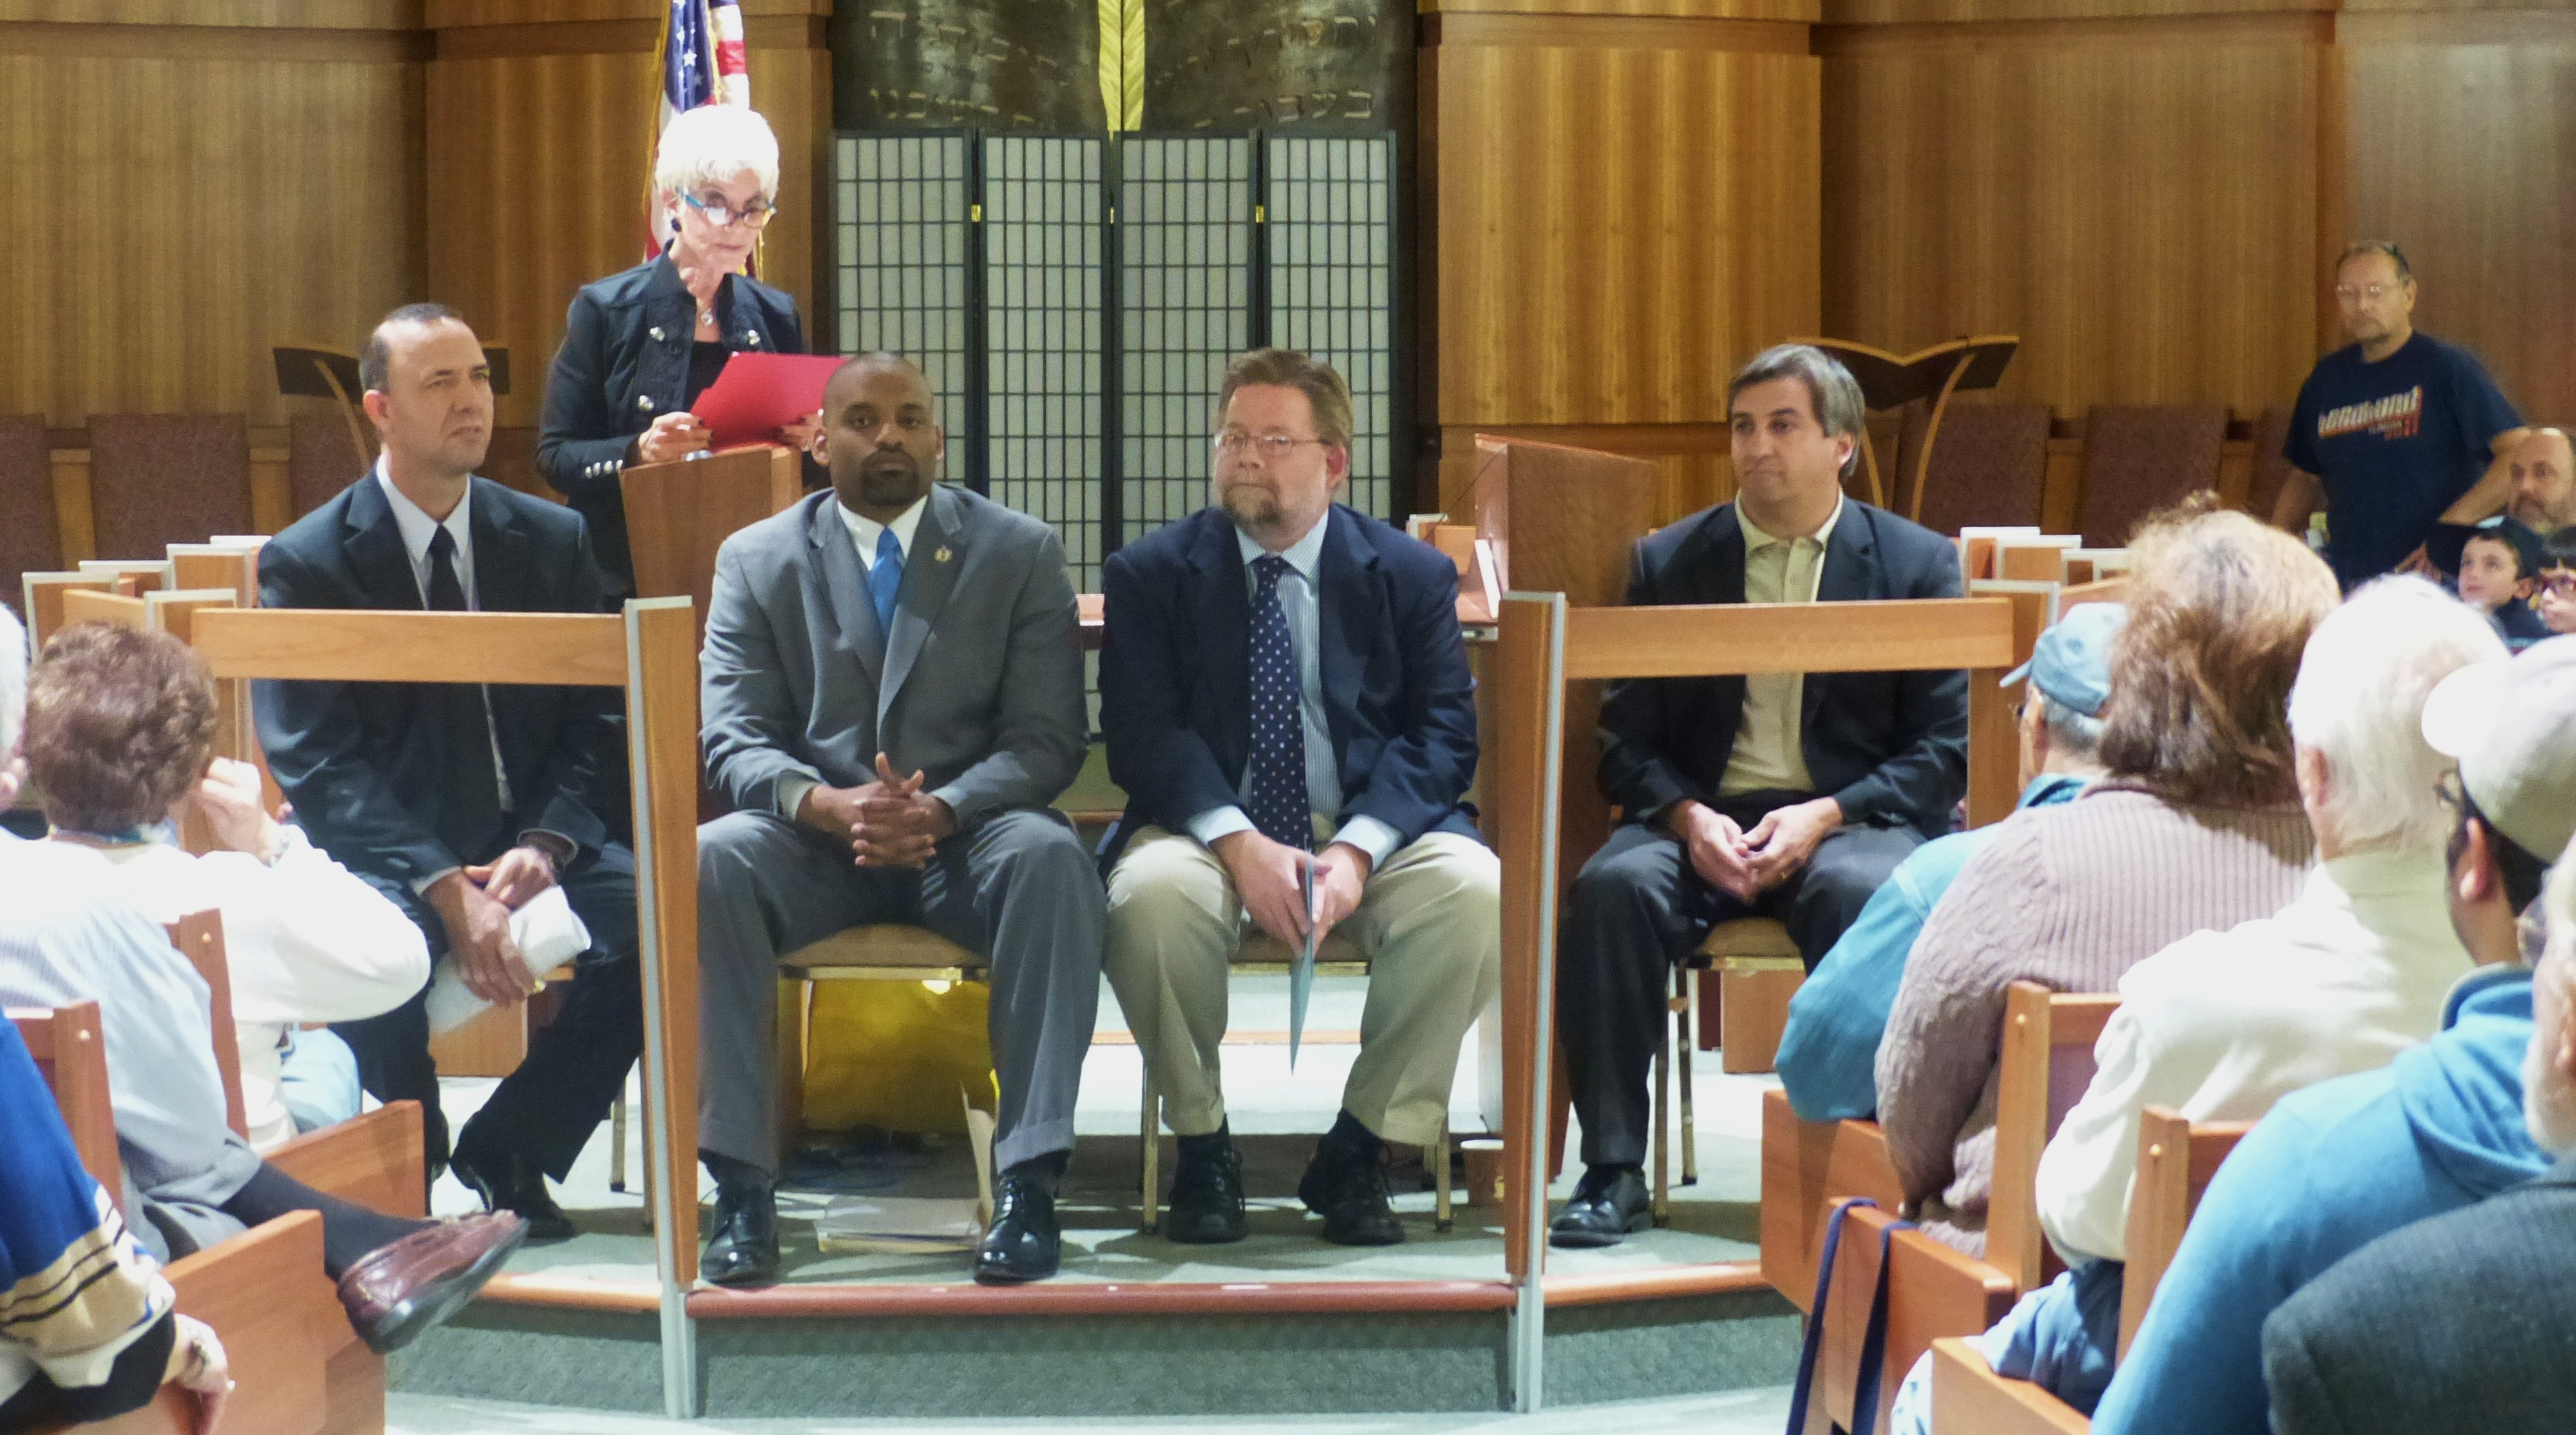 Part I: Candidate Personalities Emerge at Second West Orange Mayoral Forum